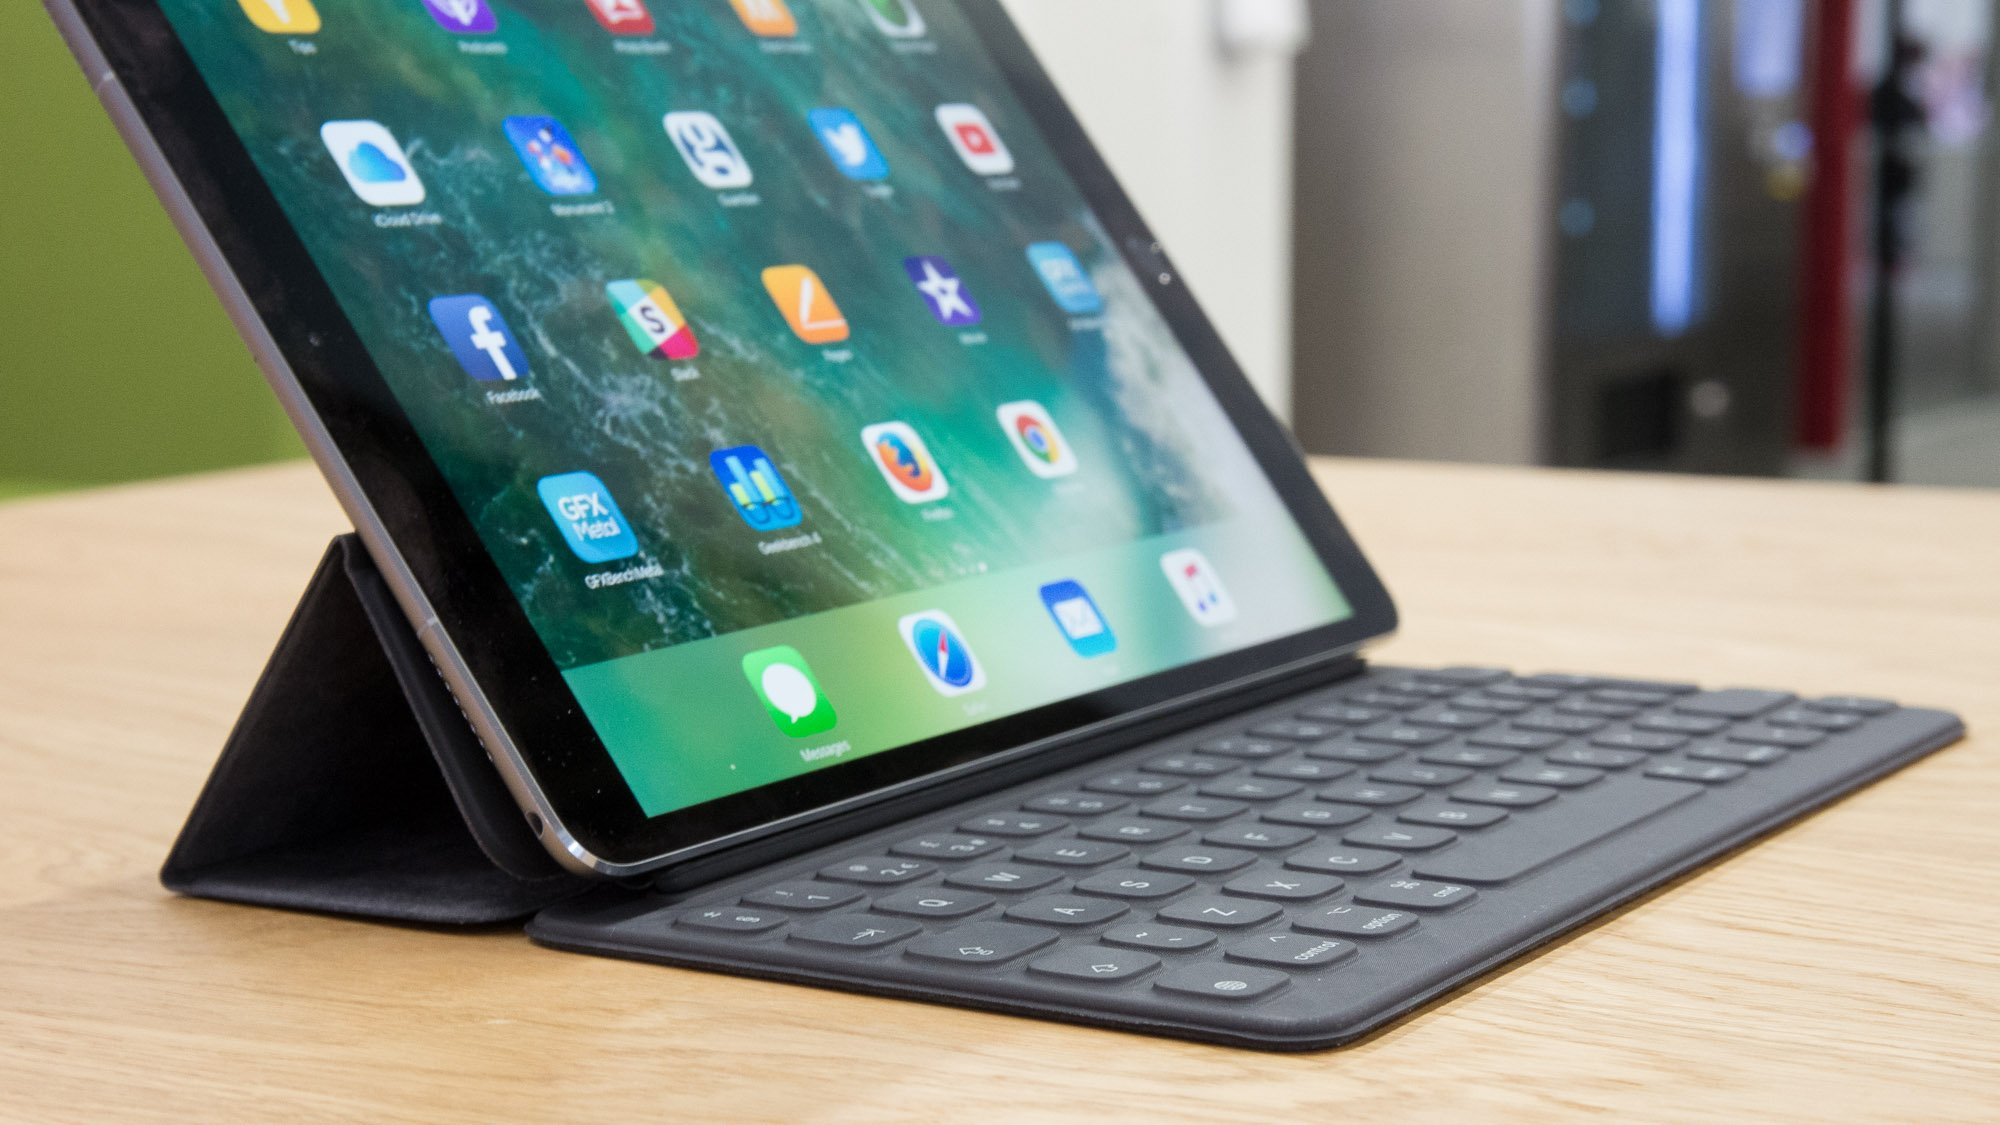 Best Ipad 2019 Refurbished iPads: Everything you need to know before buying one